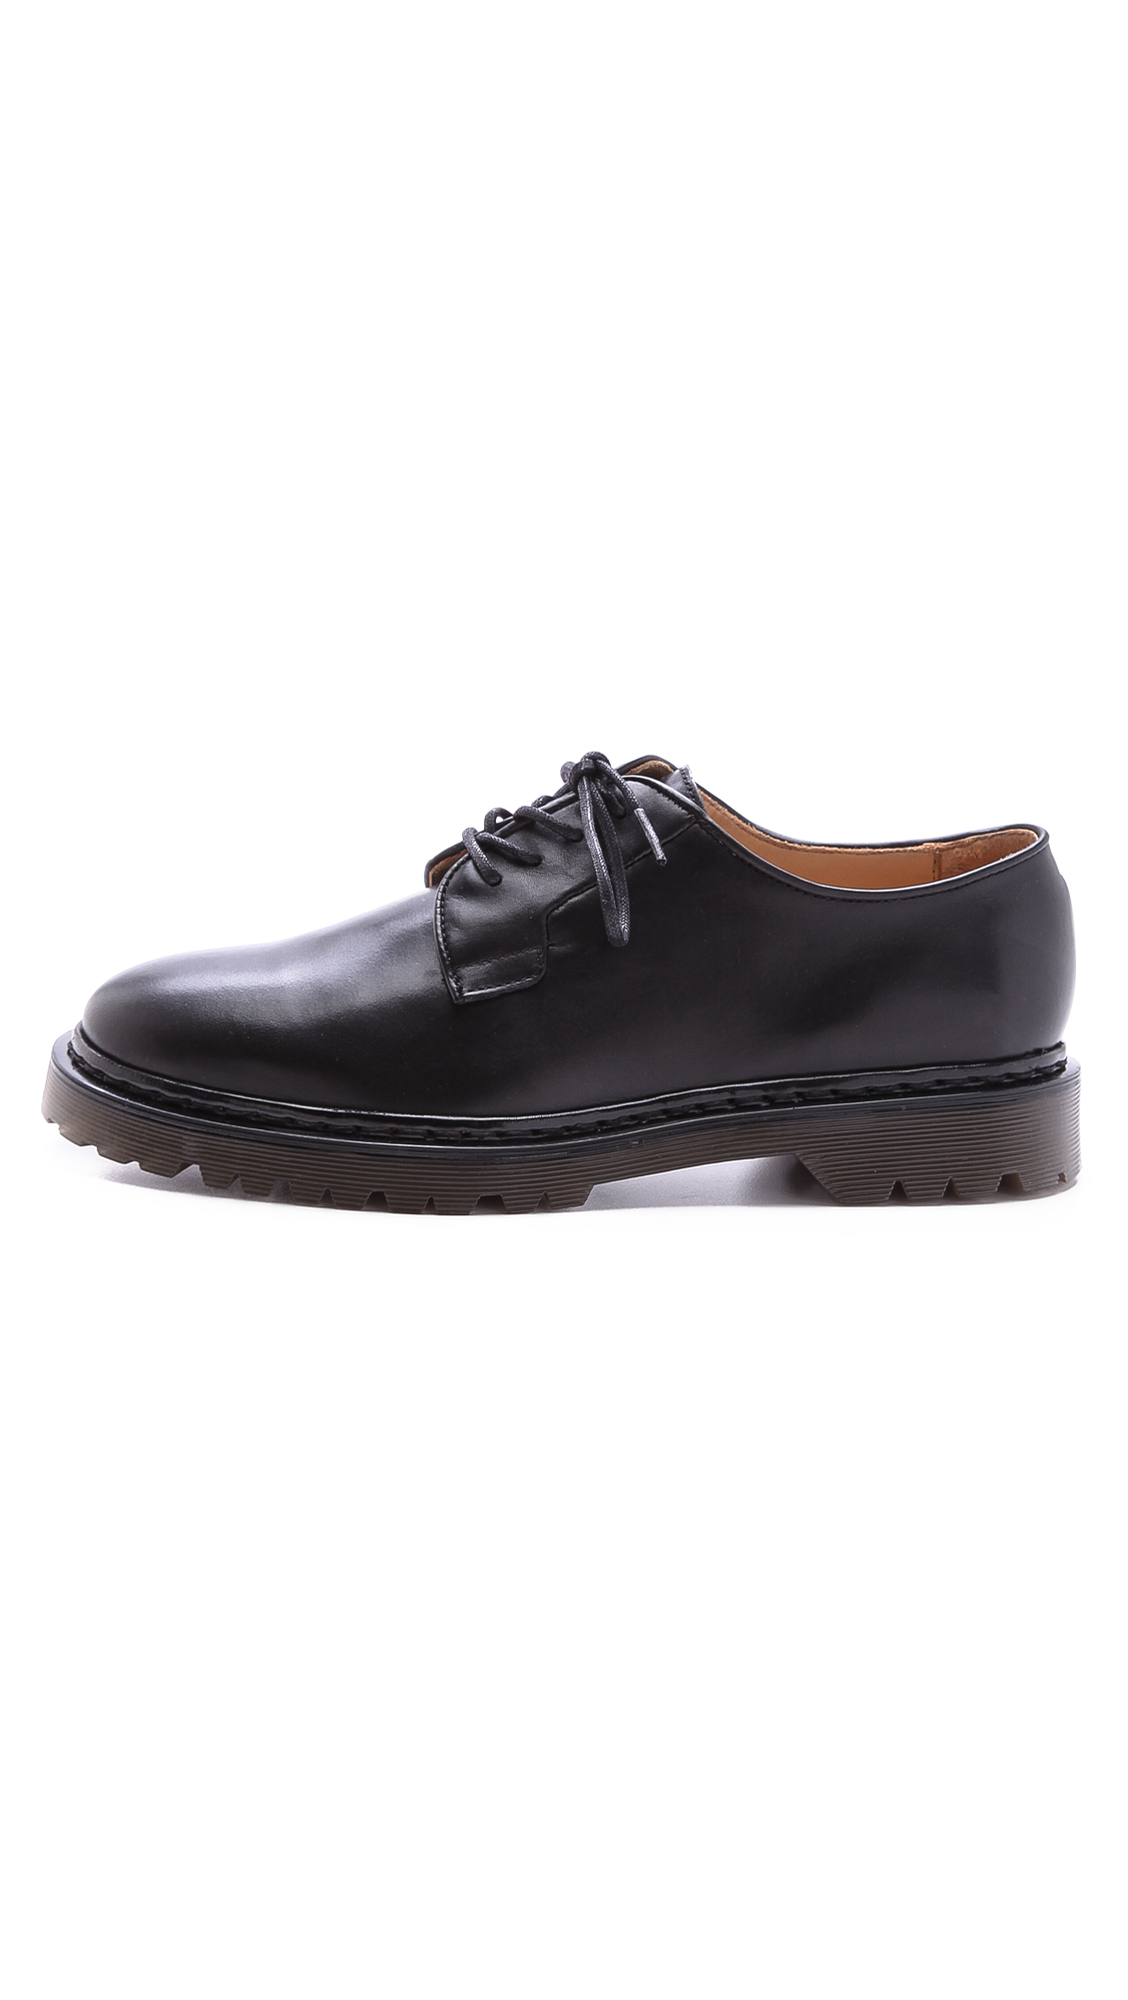 A.P.C. Leather Derby Shoes in Black for Men